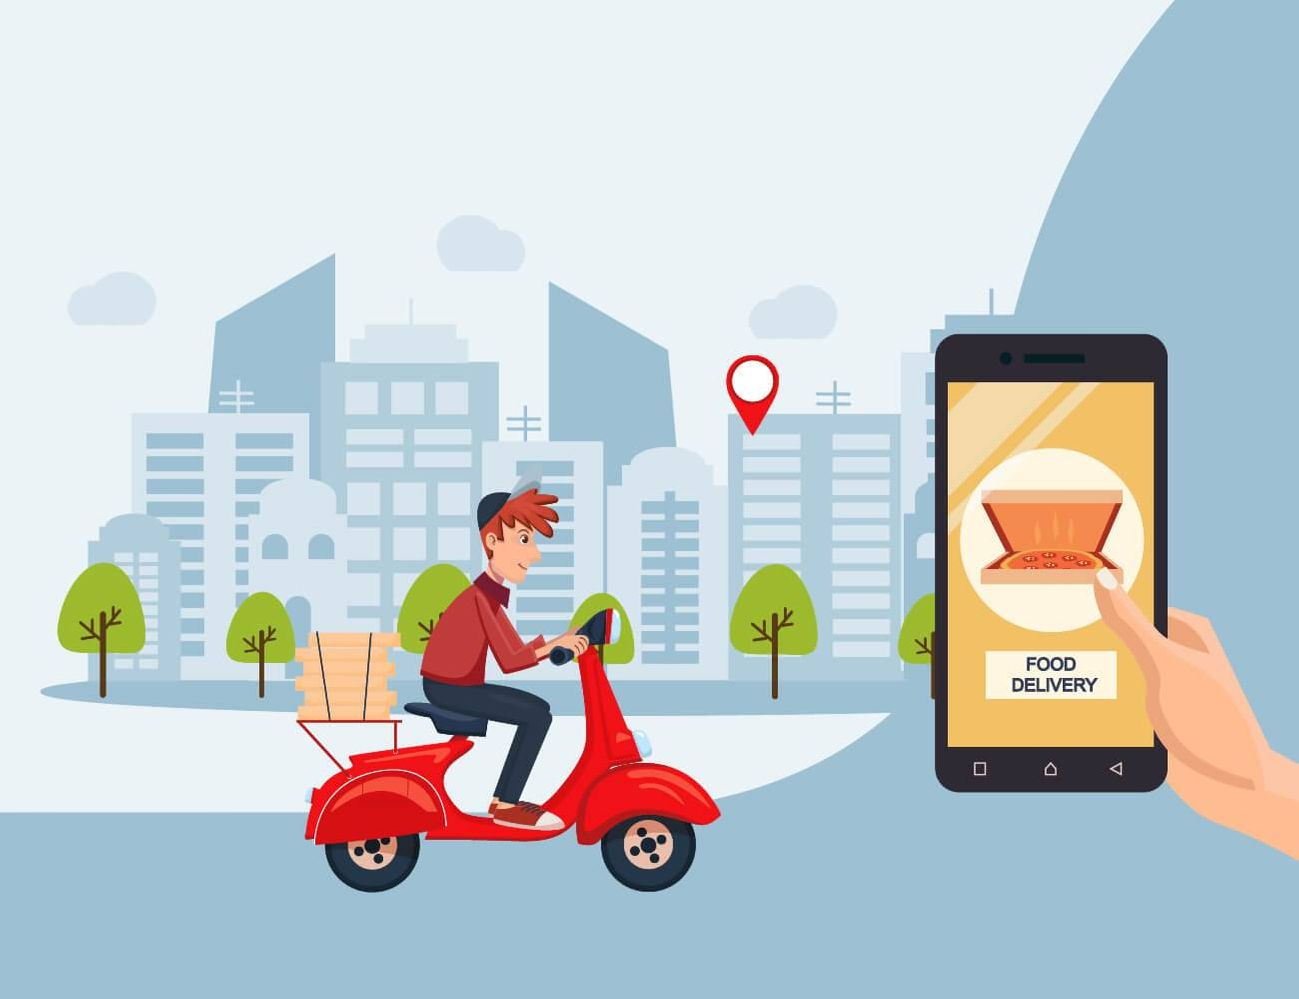 Illustration of a pizza delivery man on a scooter and a hand holding a phone, ordering on an app. Rewire PBS Work Tipping